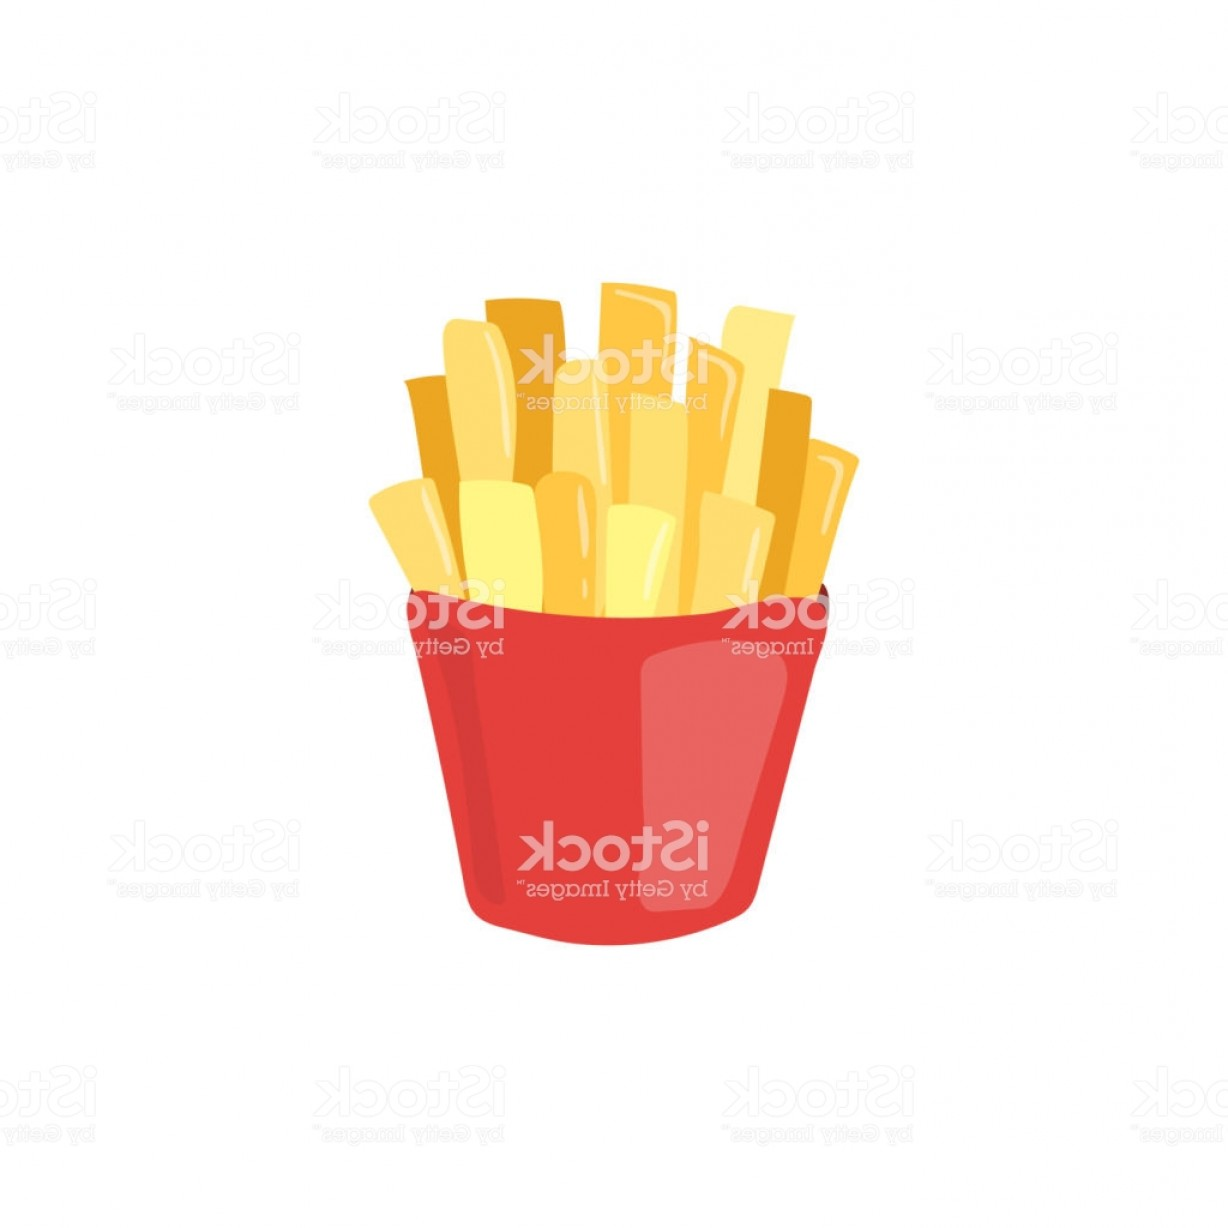 Fries Vector: Fast Food French Fries Vector Icon Unhealthy Eating Potato Cartoon Illustration Gm